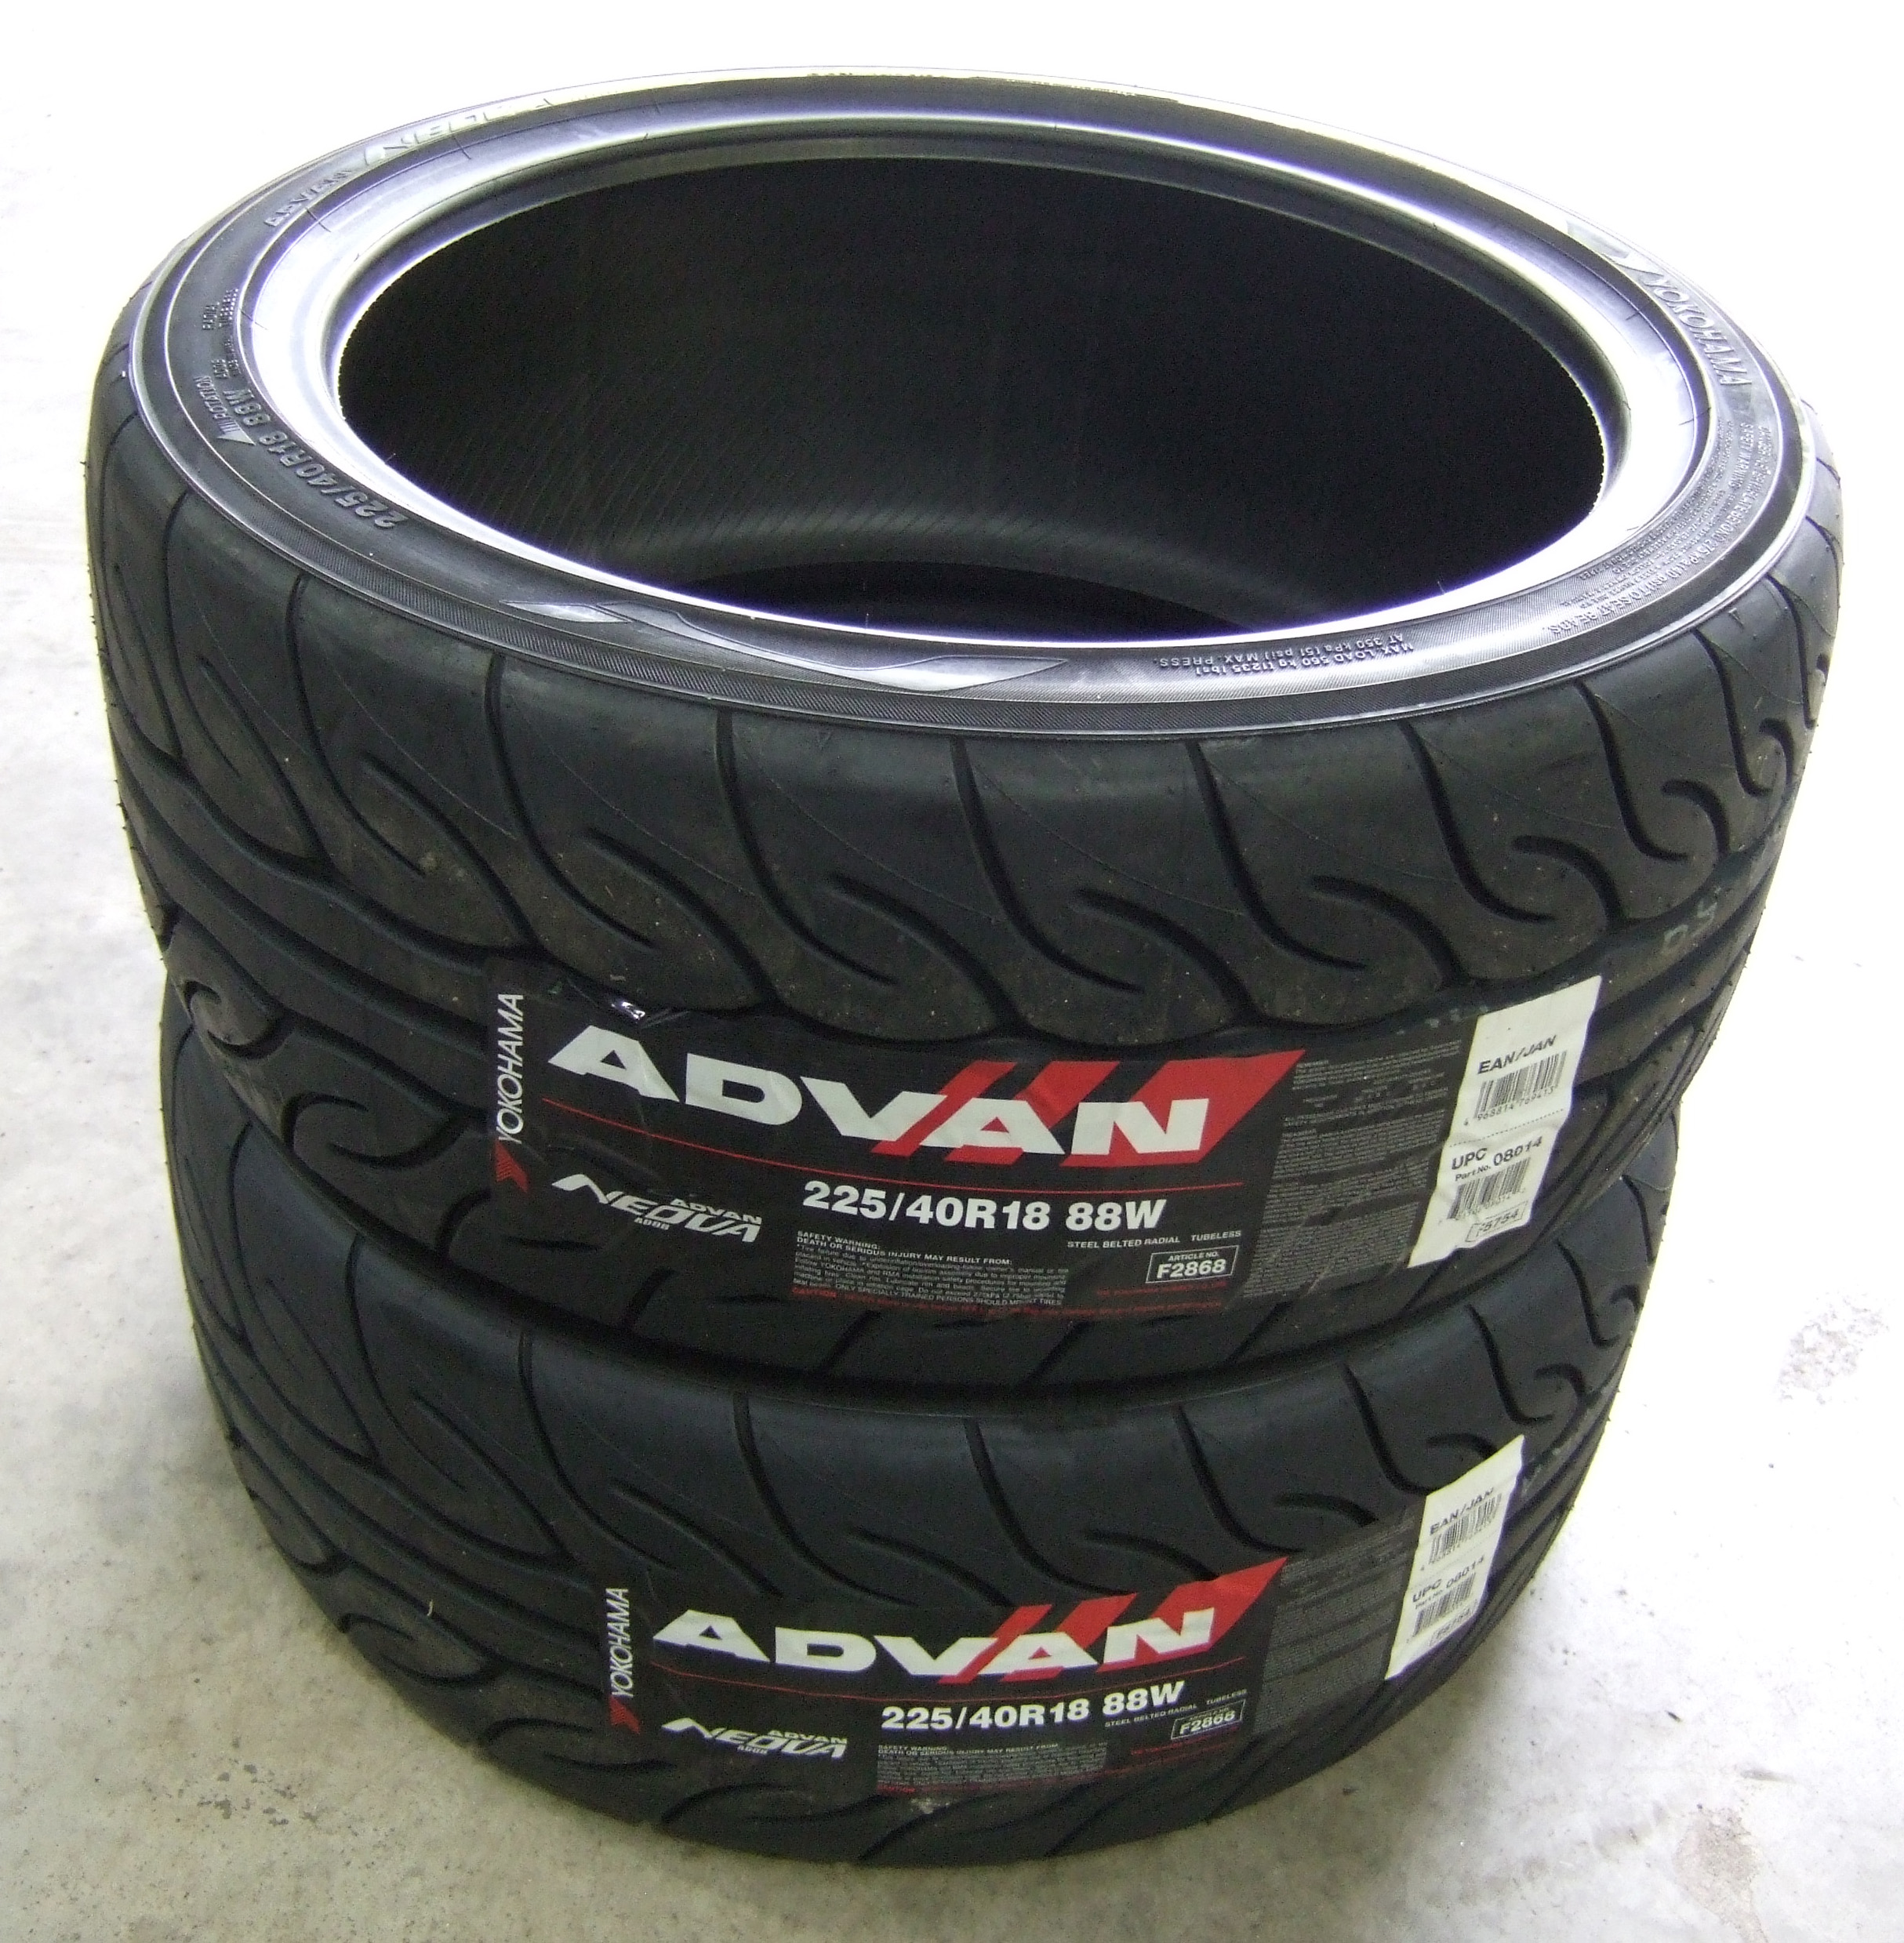 225 40 18 yokohama ad08 advan neova track day tyres 2254018 88w 225 40 18 x2 ebay. Black Bedroom Furniture Sets. Home Design Ideas